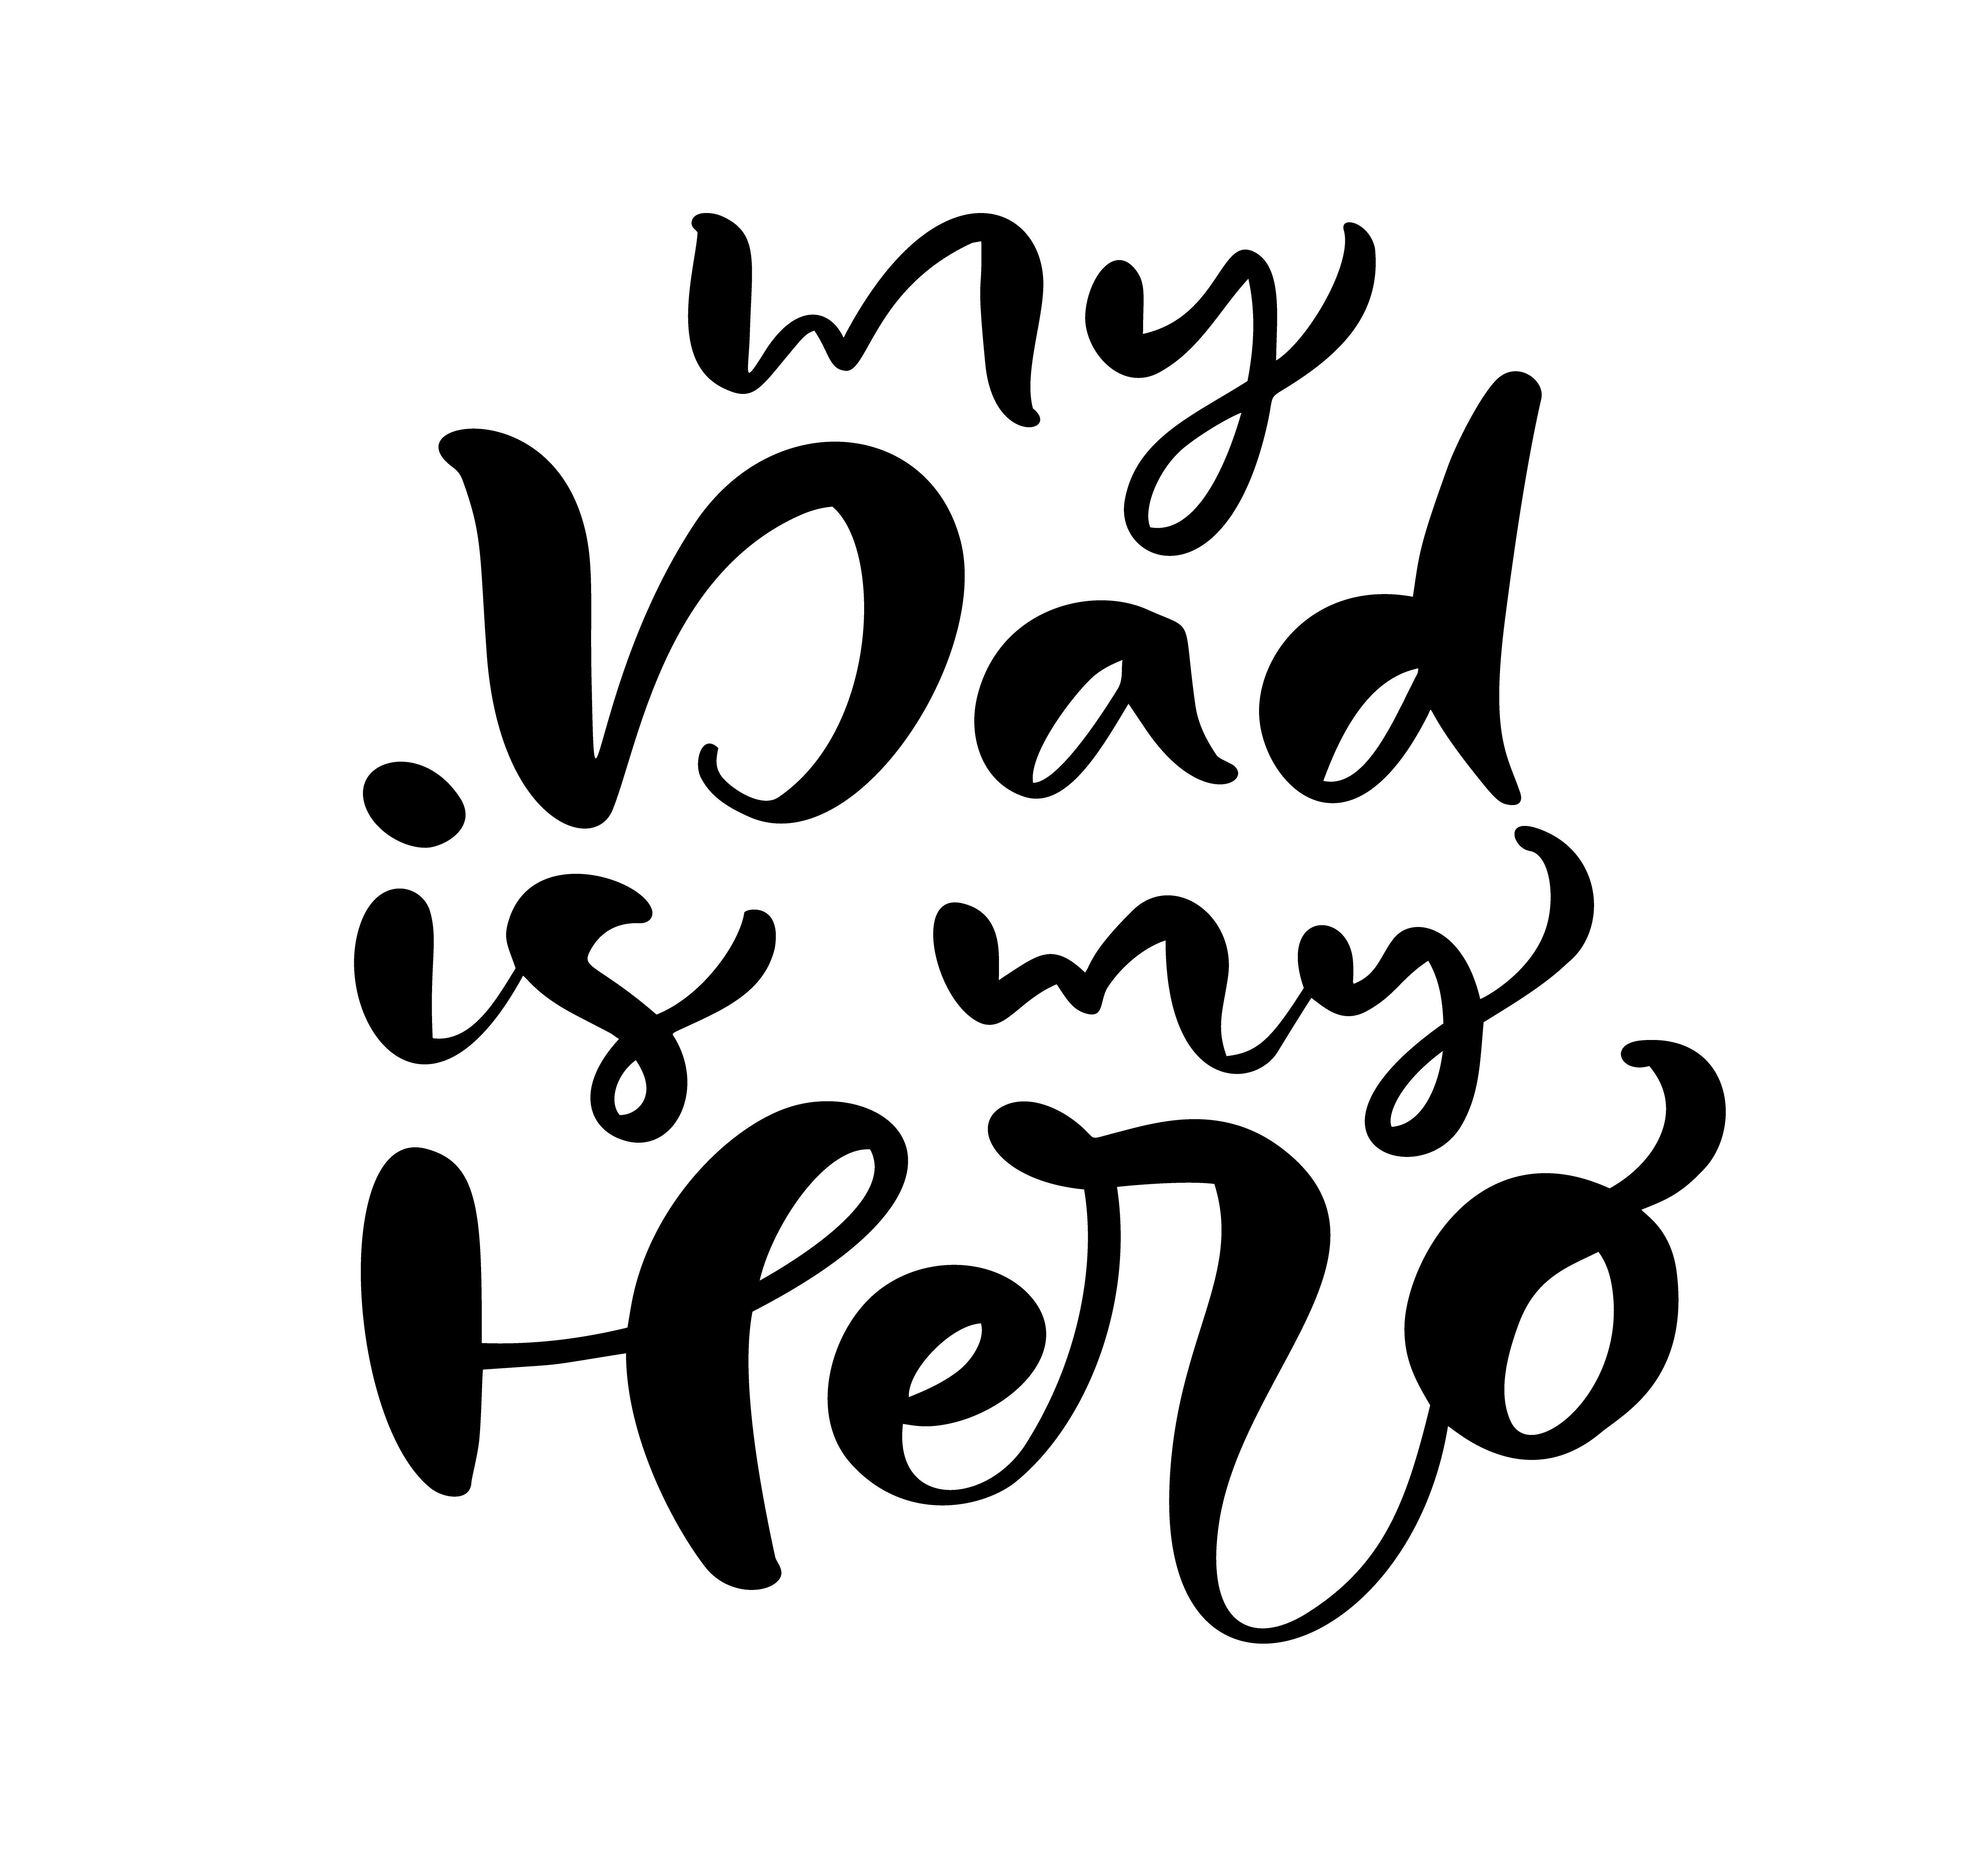 My Dad Is My Hero Lettering Black Vector Calligraphy Text For Happy Fathers Day Modern Vintage Lettering Handwritten Phrase Best Dad Ever Illustration Download Free Vectors Clipart Graphics Vector Art